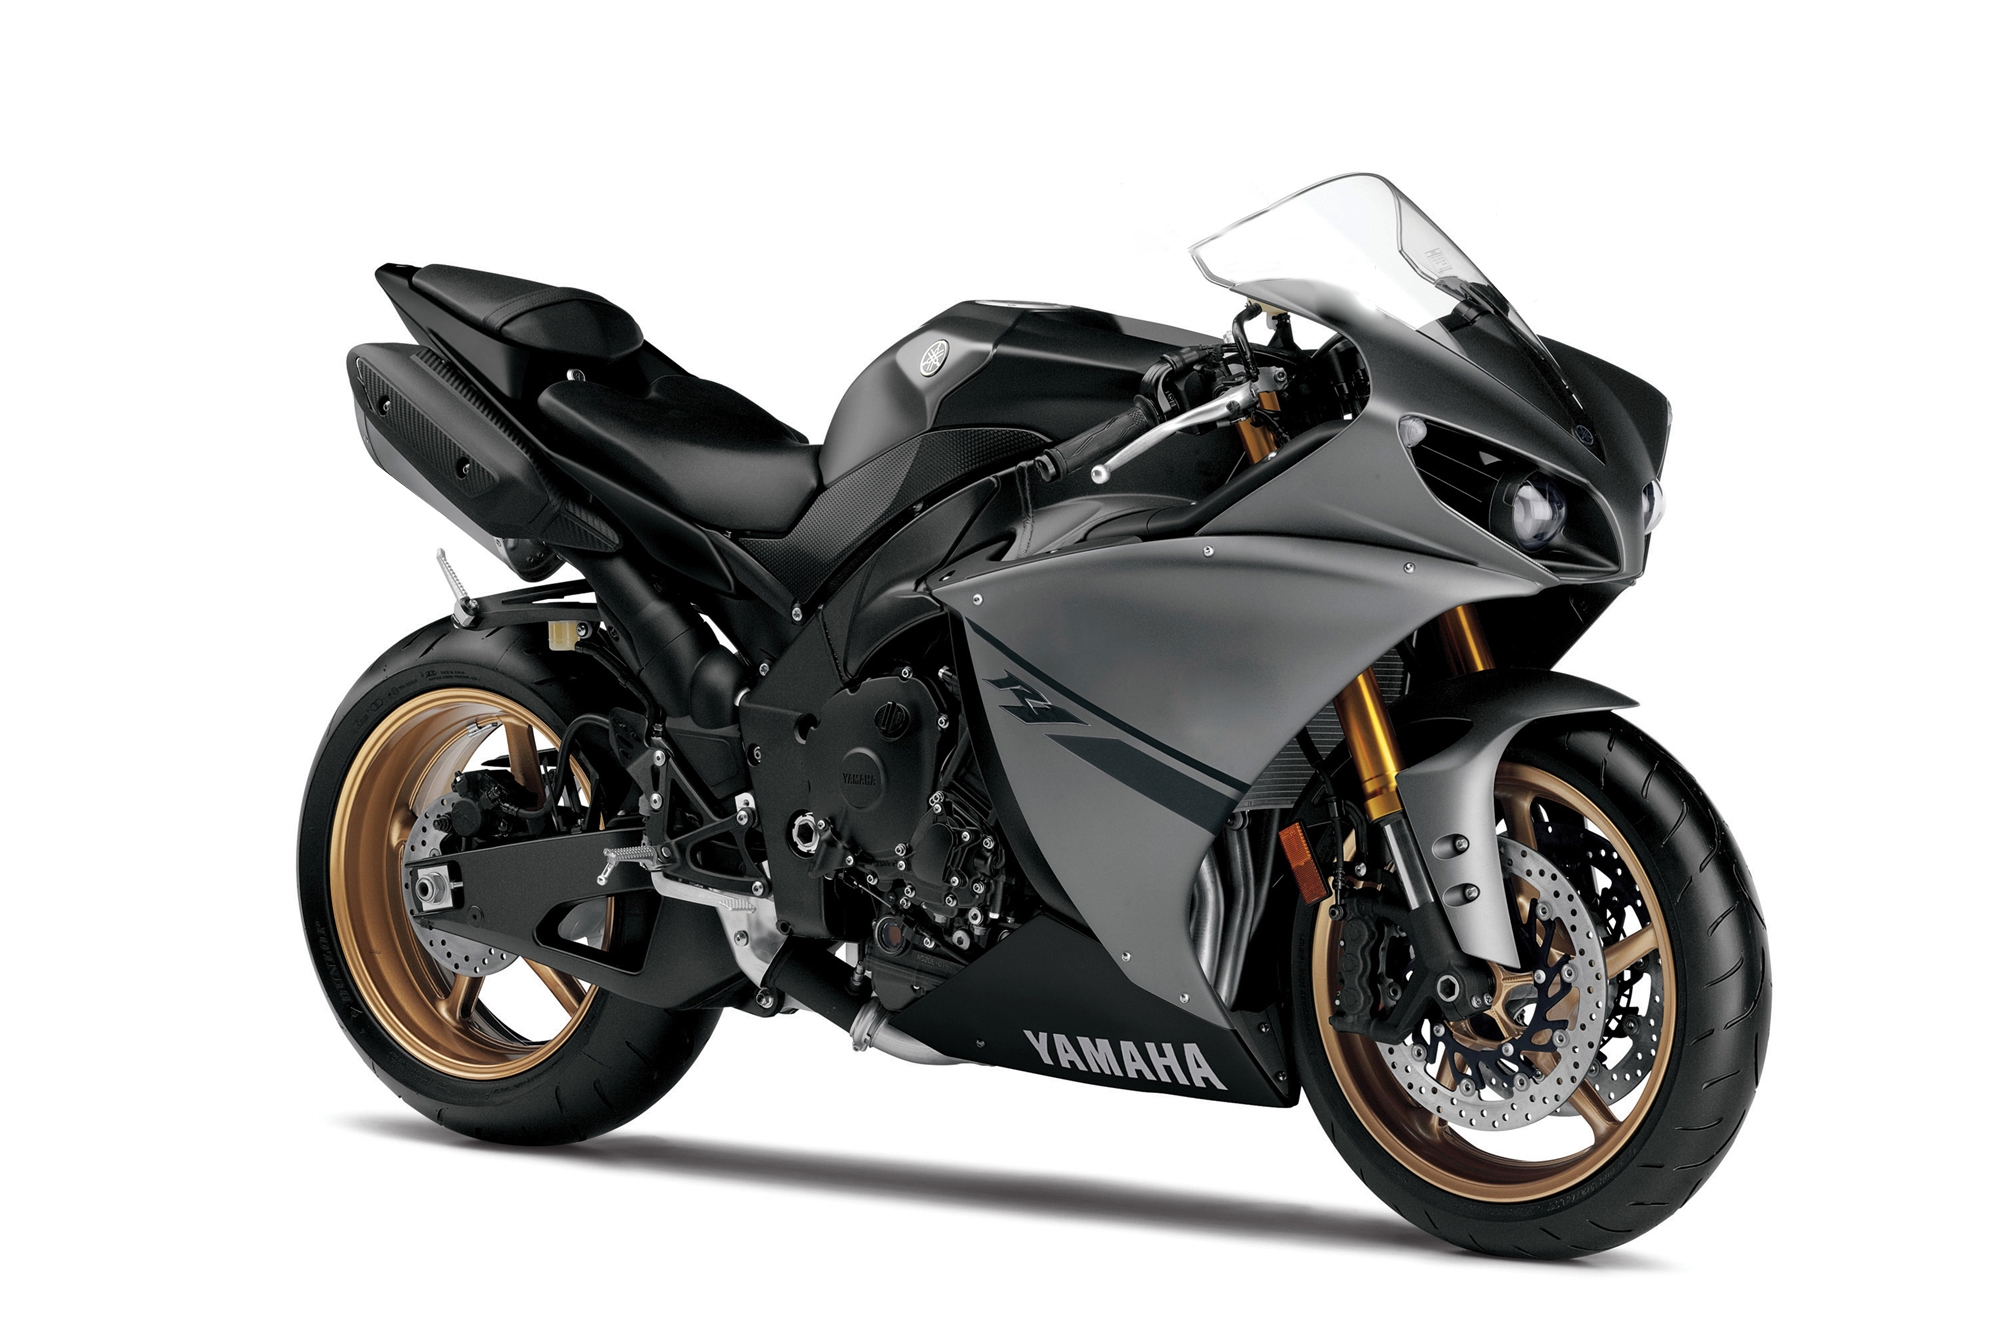 Yamaha rolls out updated yzf r1 in india at rs 20 7 lakh for New yamaha motor